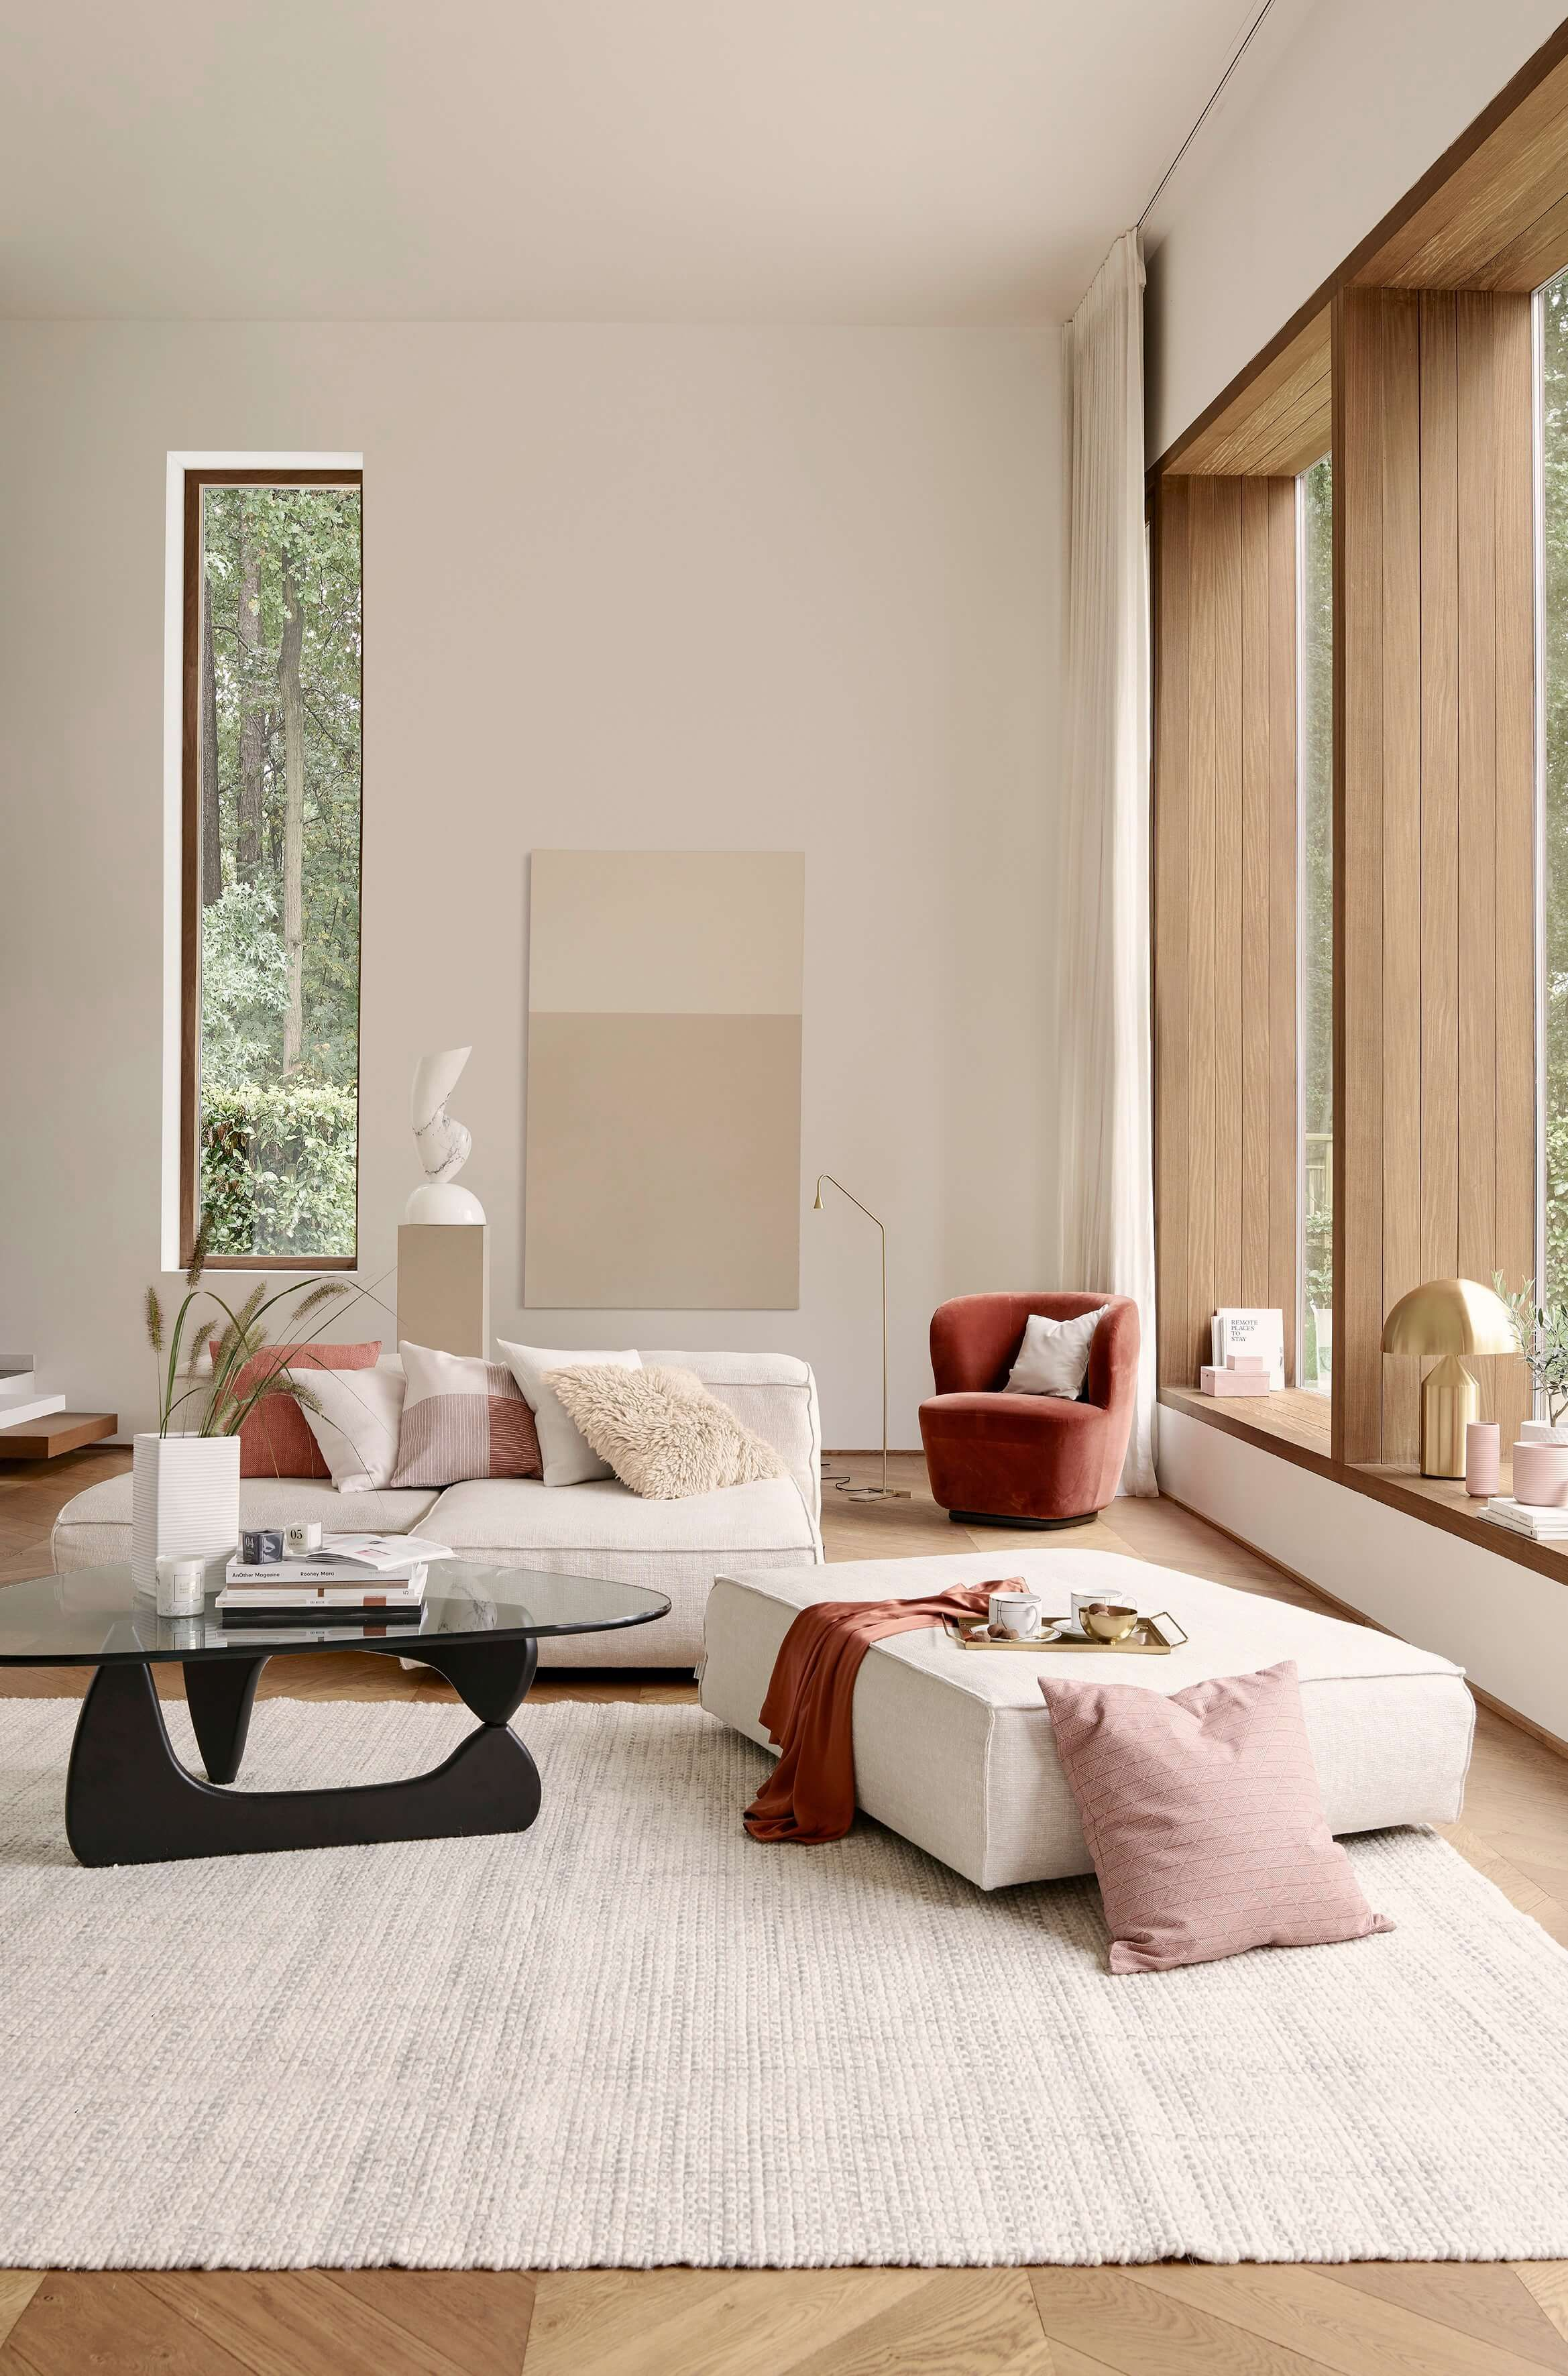 The New Neutrals Interior Trend For 2019 Living Room Interior